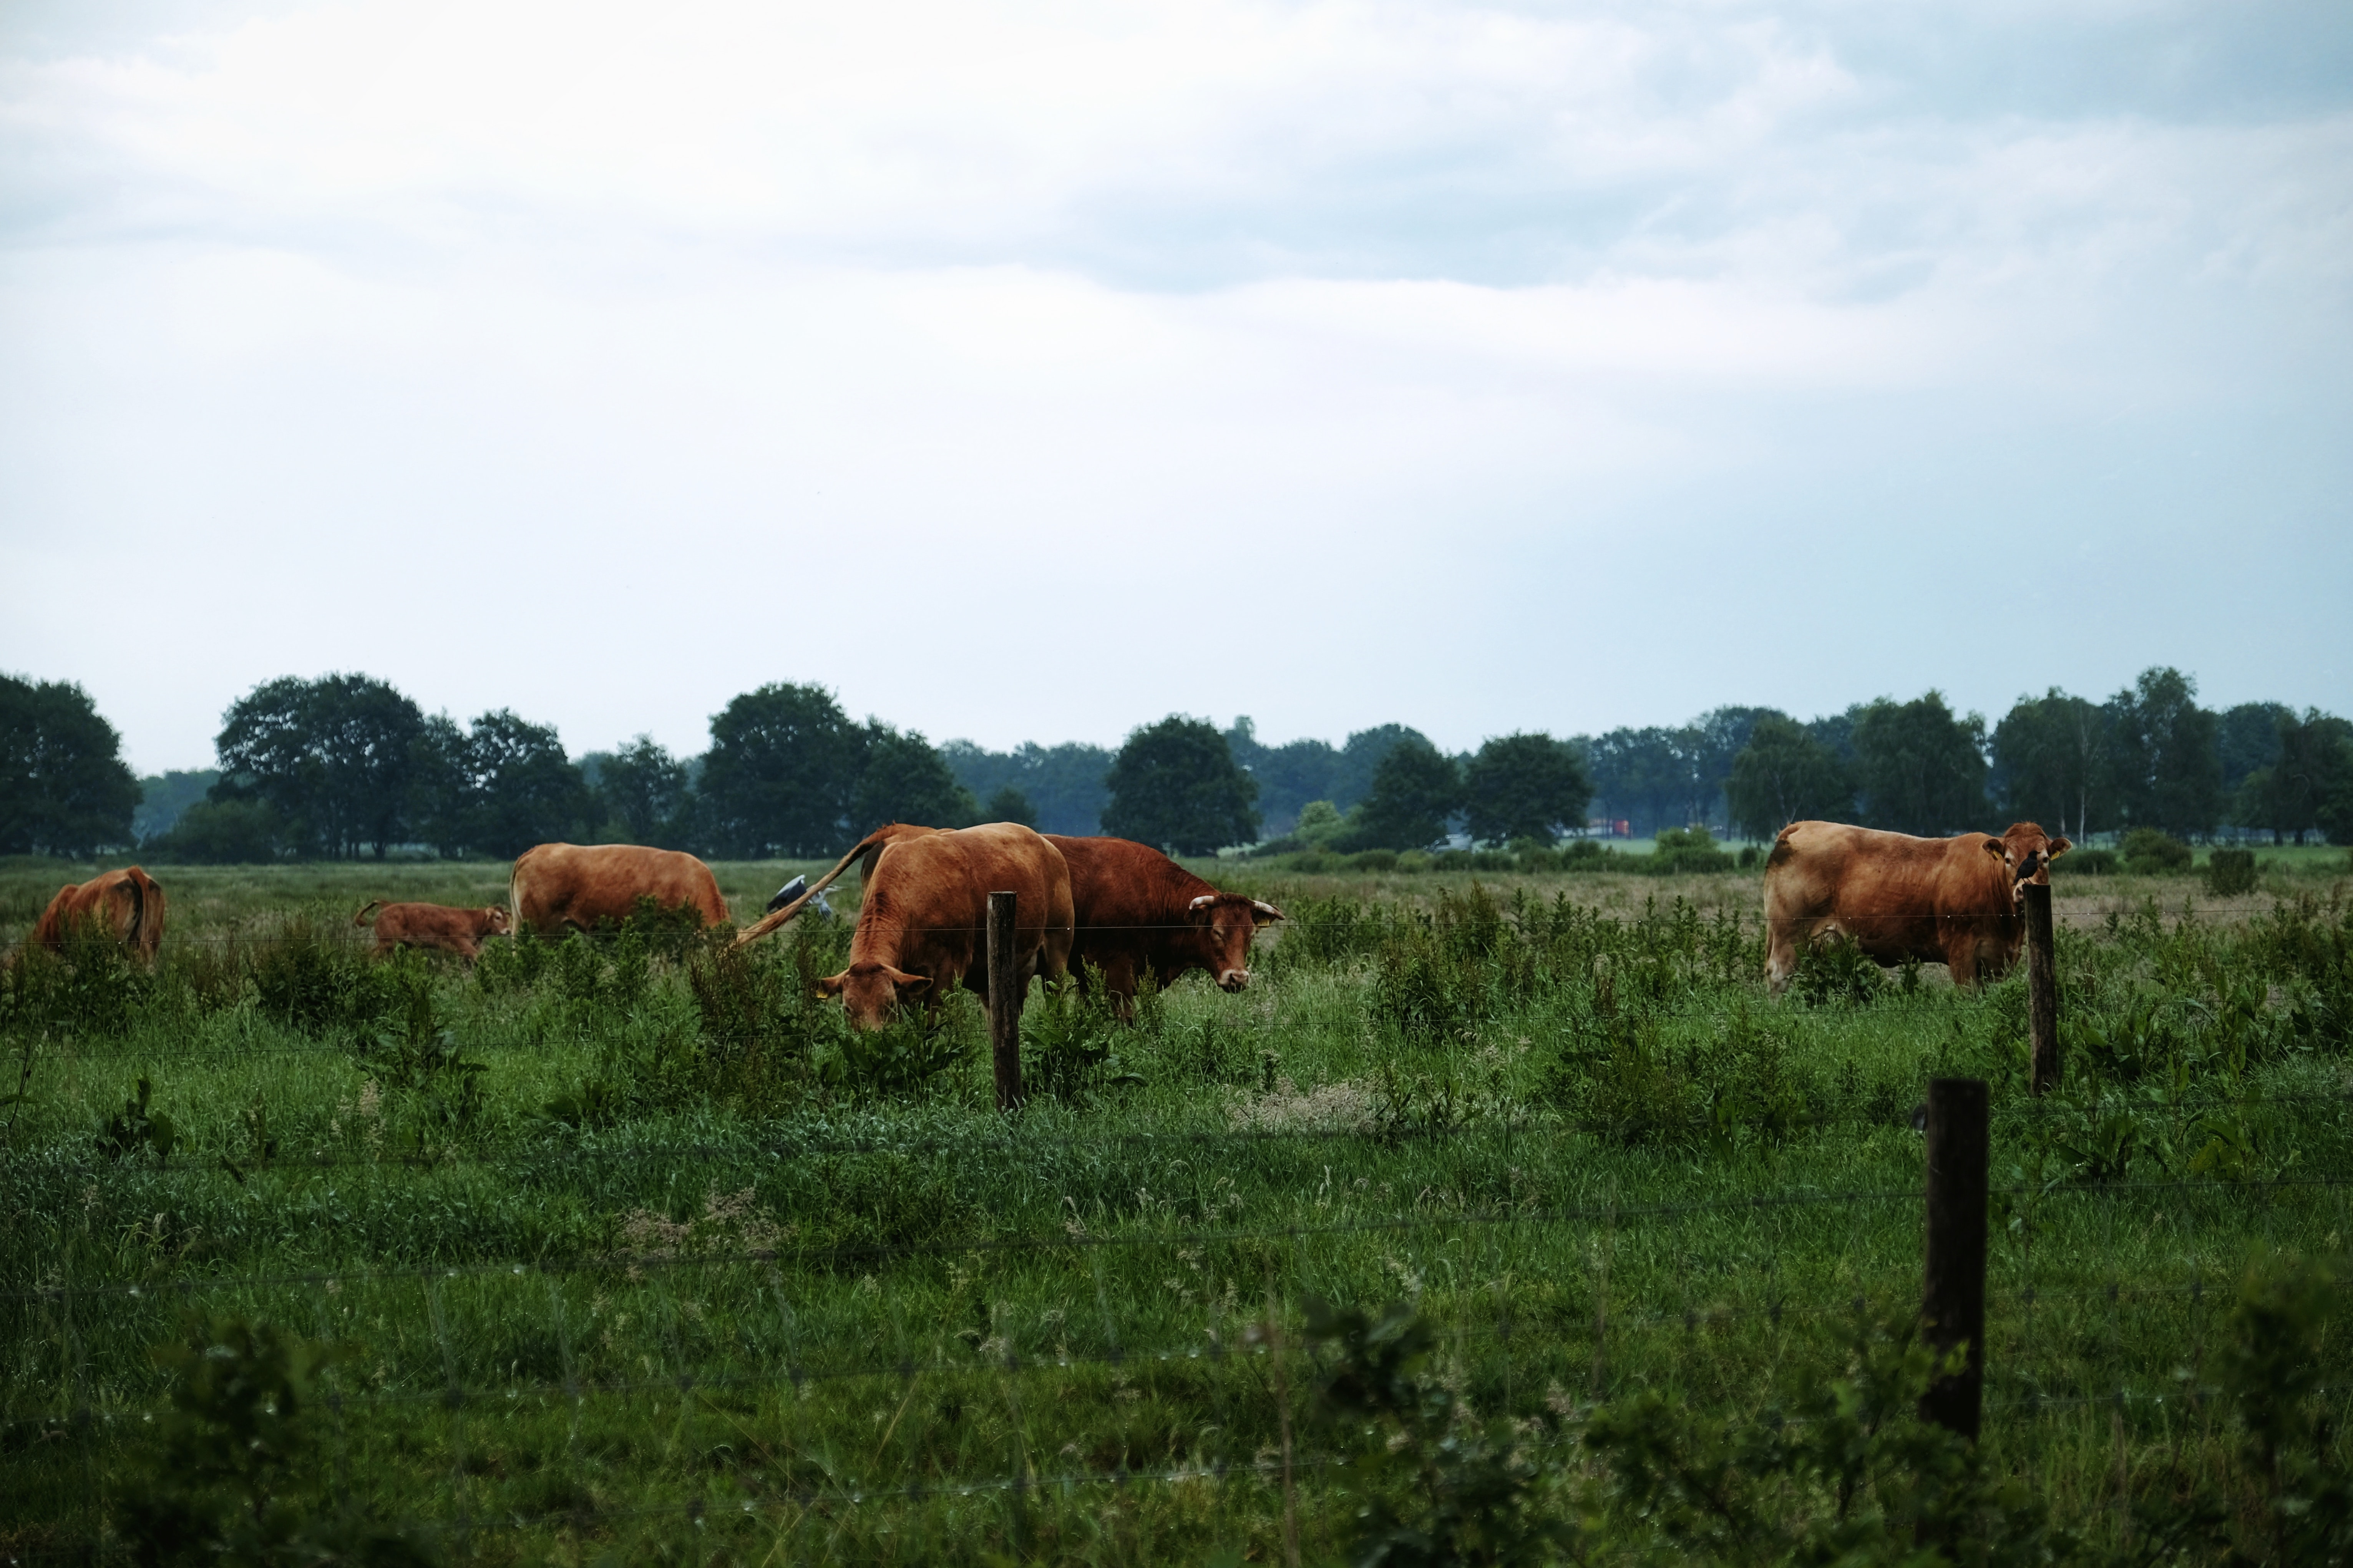 Cows grazing on farm land